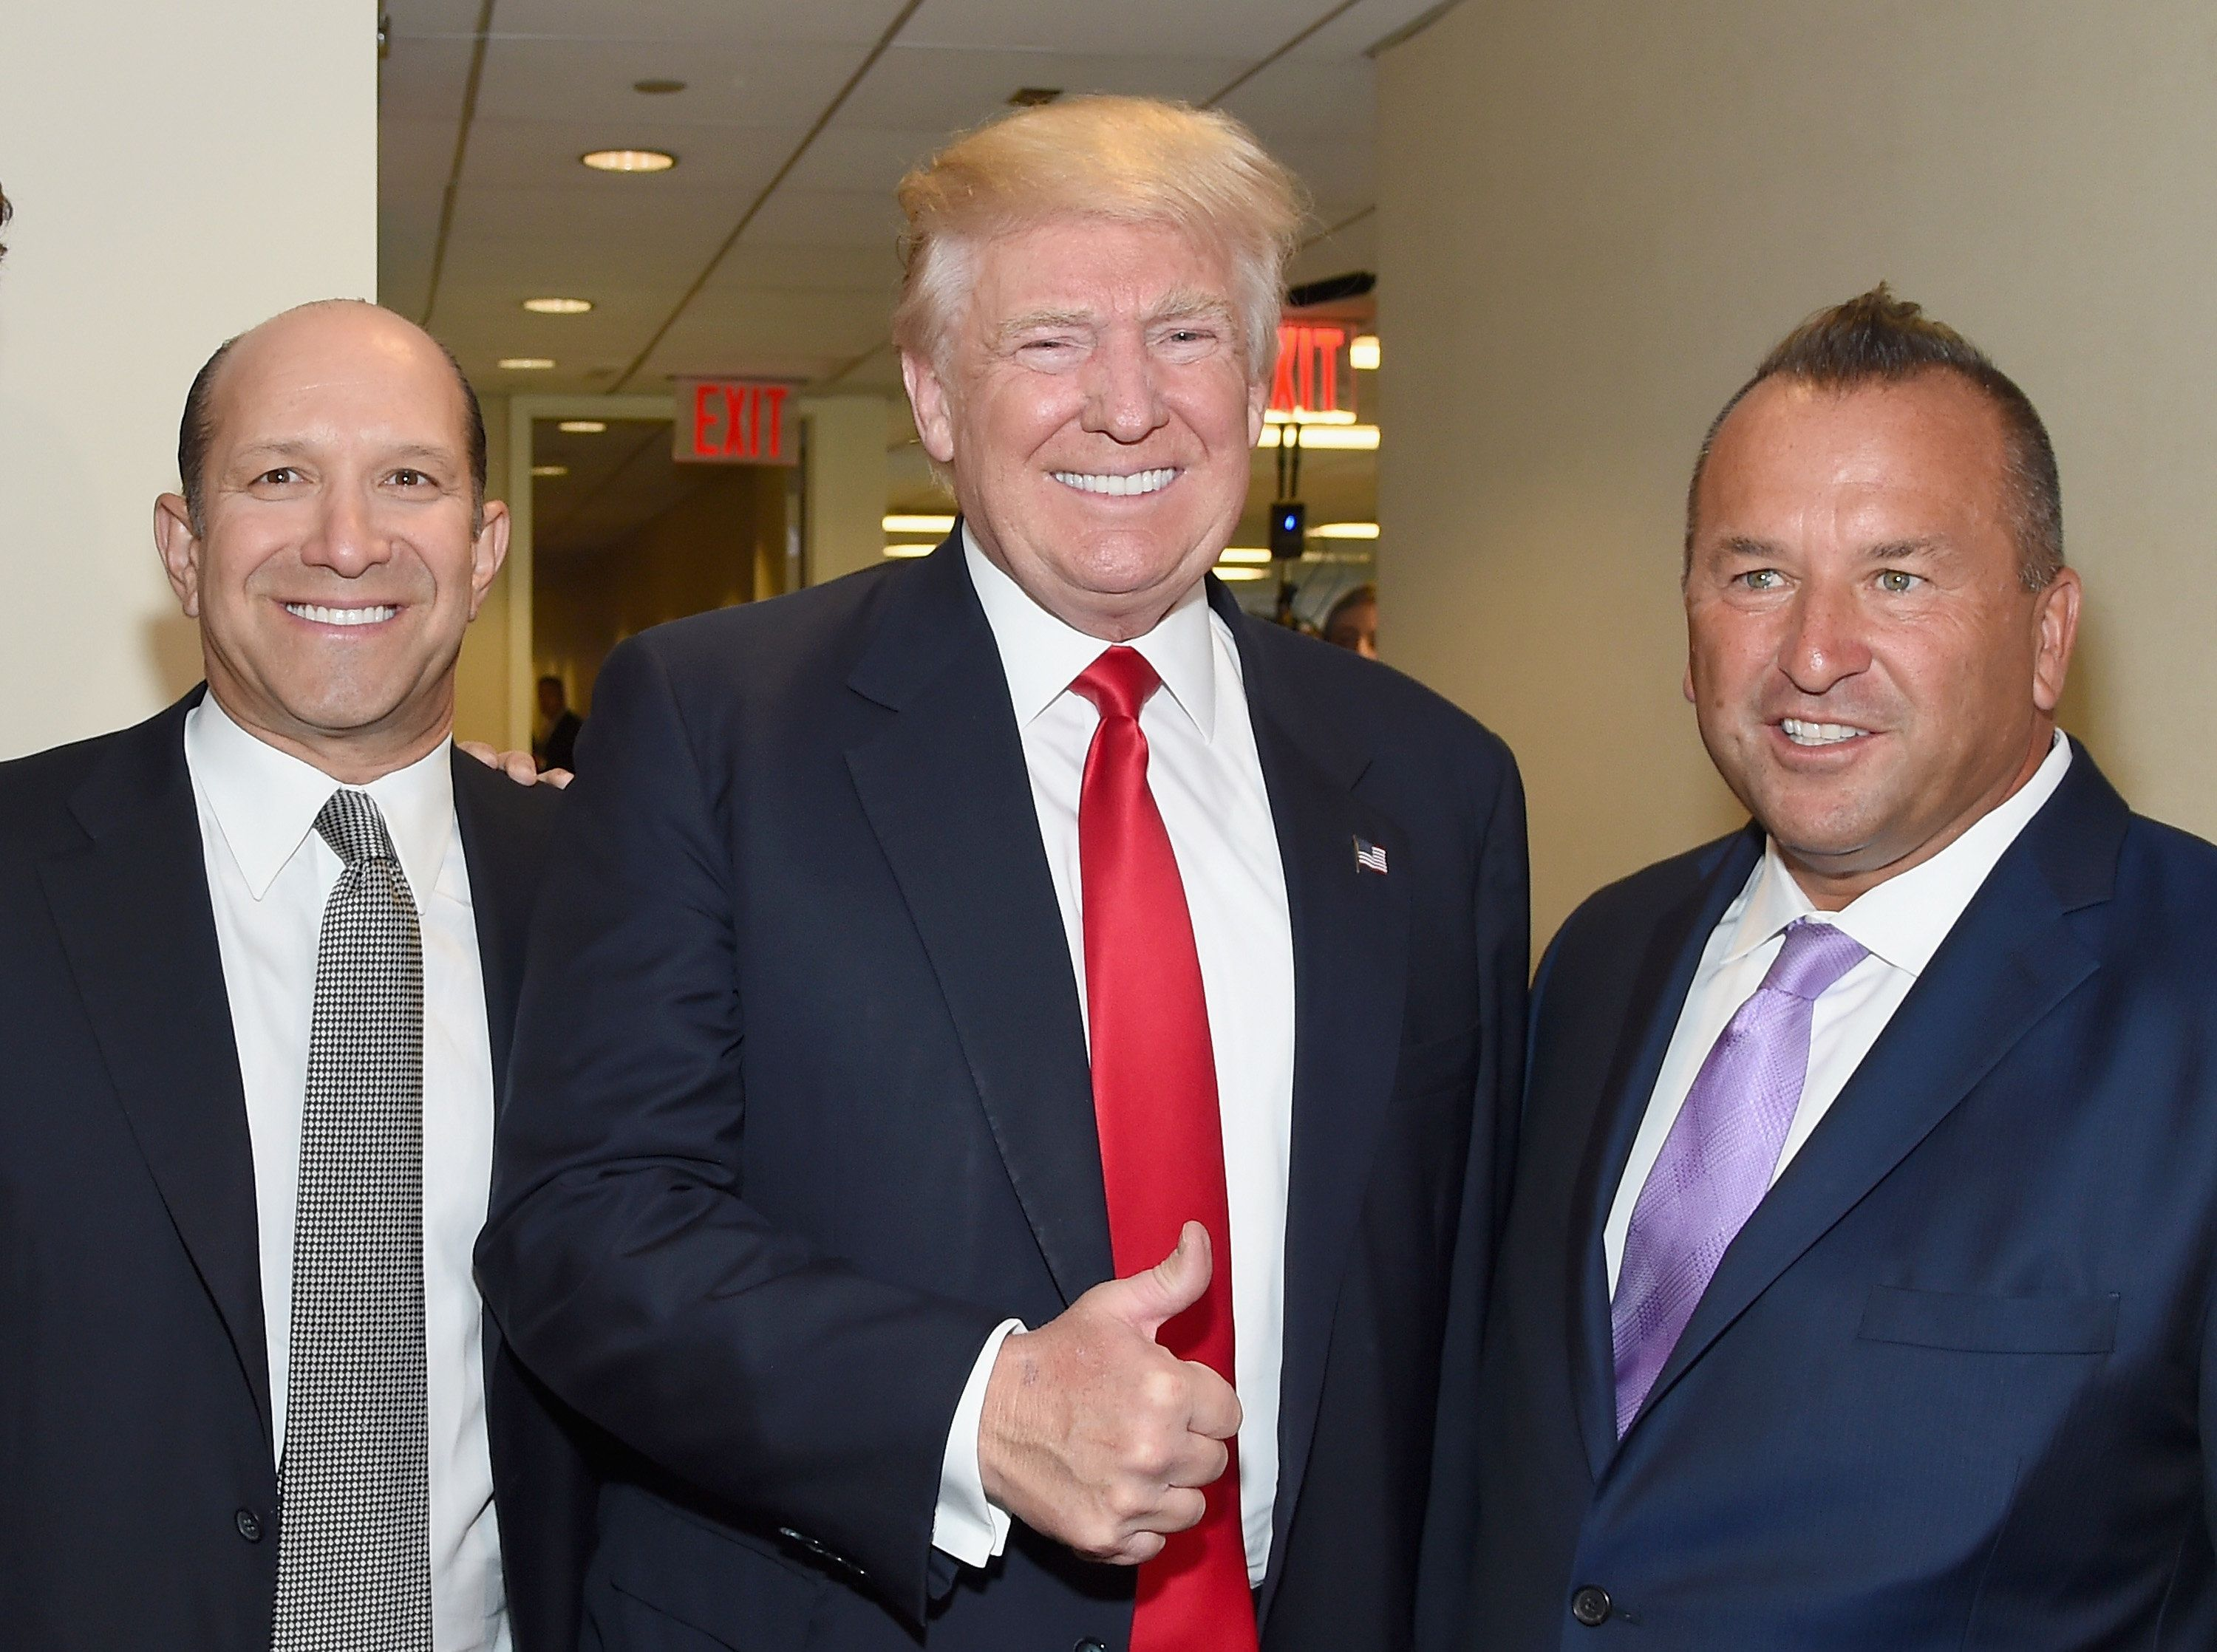 NEW YORK, NY - SEPTEMBER 12:  (L-R) Chairman and CEO of Cantor Fitzgerald, Howard Lutnick, US Republican presidential nominee Donald Trump, and Executive Managing Director, North America for BGC, Daniel LaVecchia attend Annual Charity Day hosted by Cantor Fitzgerald, BGC and GFI at BGC Partners, INC on September 12, 2016 in New York City.  (Photo by Larry Busacca/Getty Images for Cantor Fitzgerald)